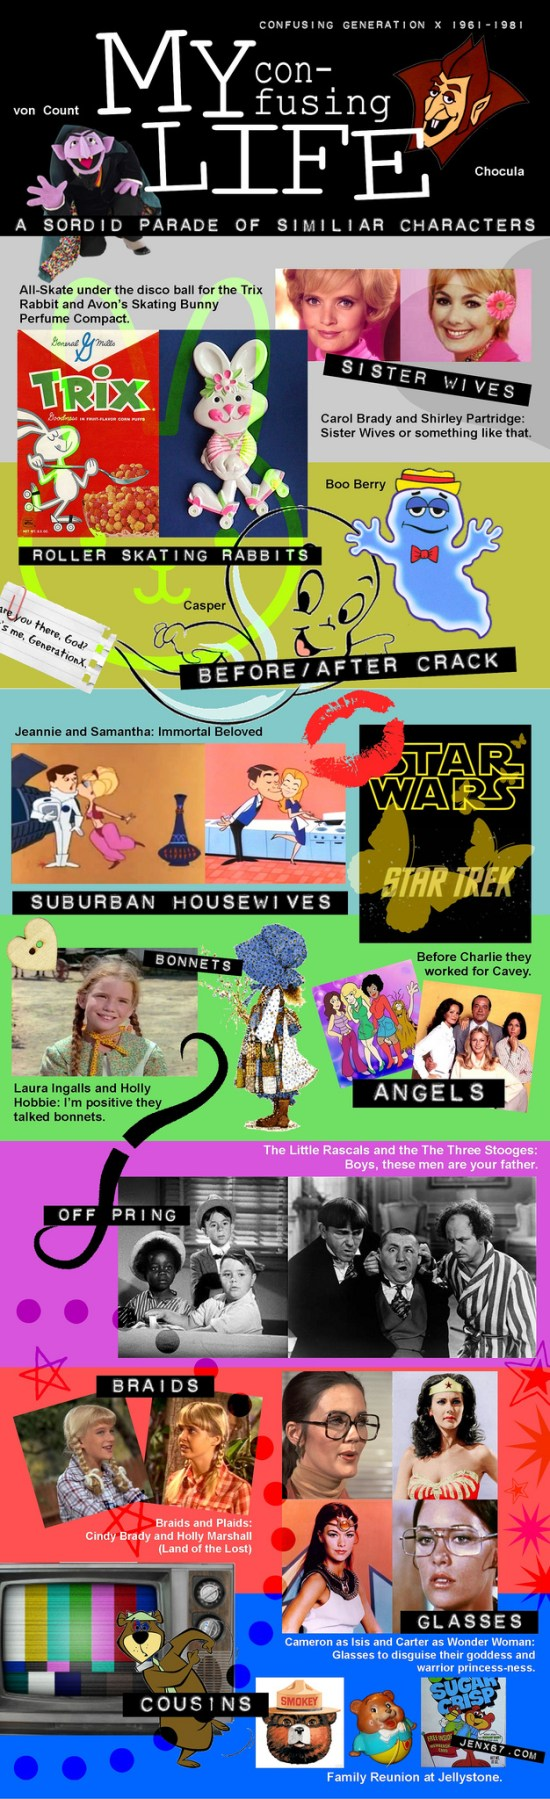 Generation Infographic featuring popular characters from 70s and 80s pop culture